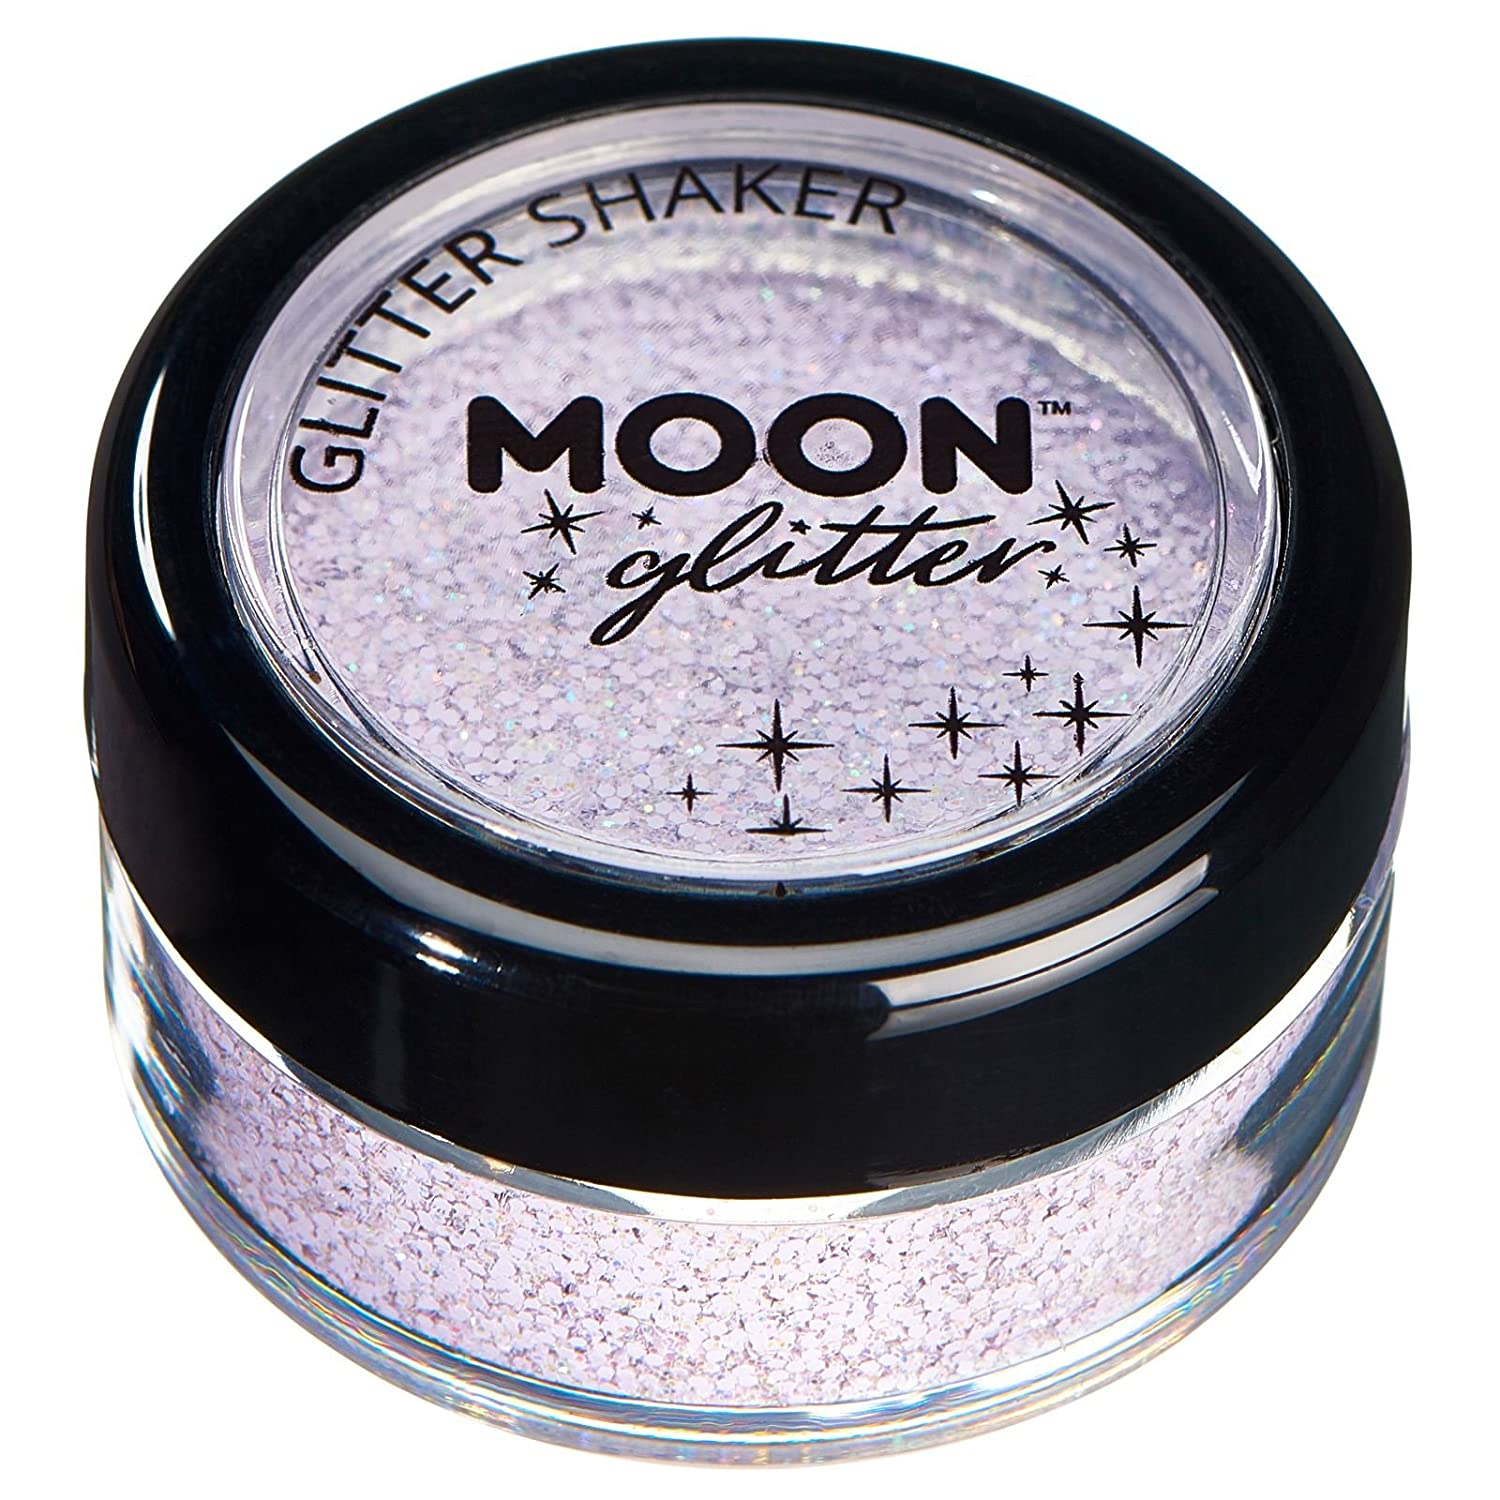 Pastel Glitter Shakers by Moon Glitter – 100% Cosmetic Glitter for Face, Body, Nails, Hair and Lips - 0.10oz - Coral